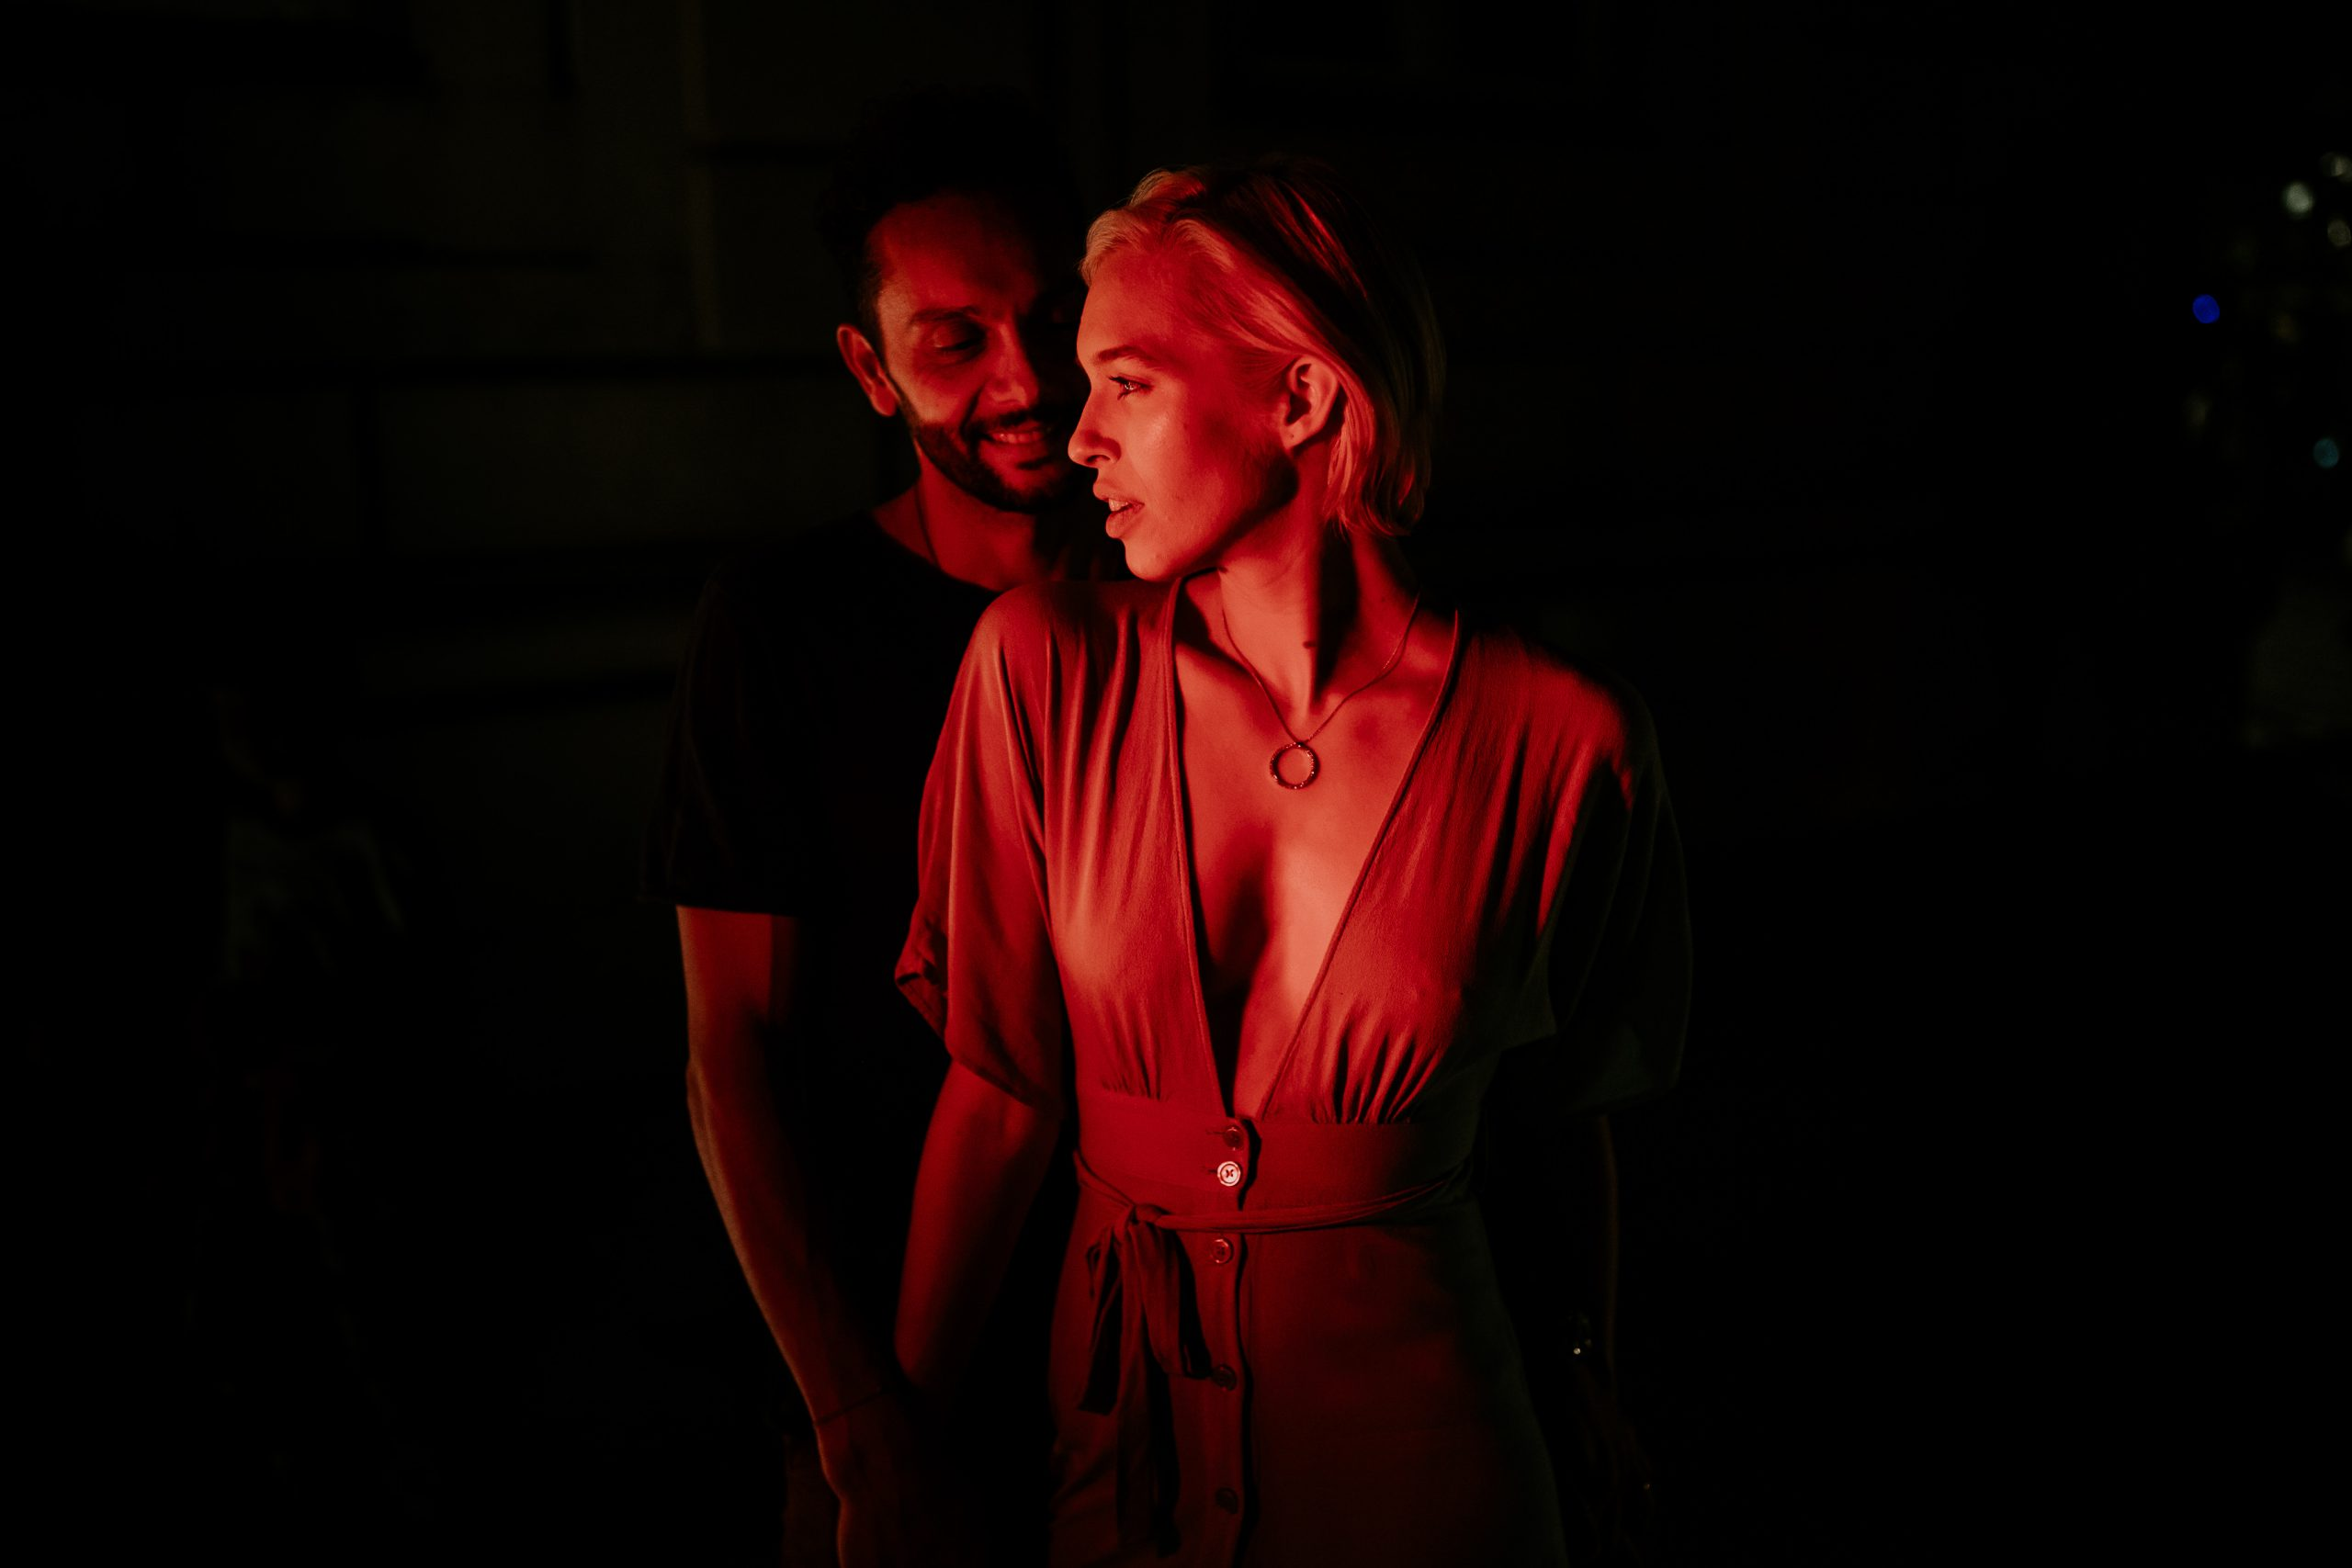 couple at night in the dark with red light on them